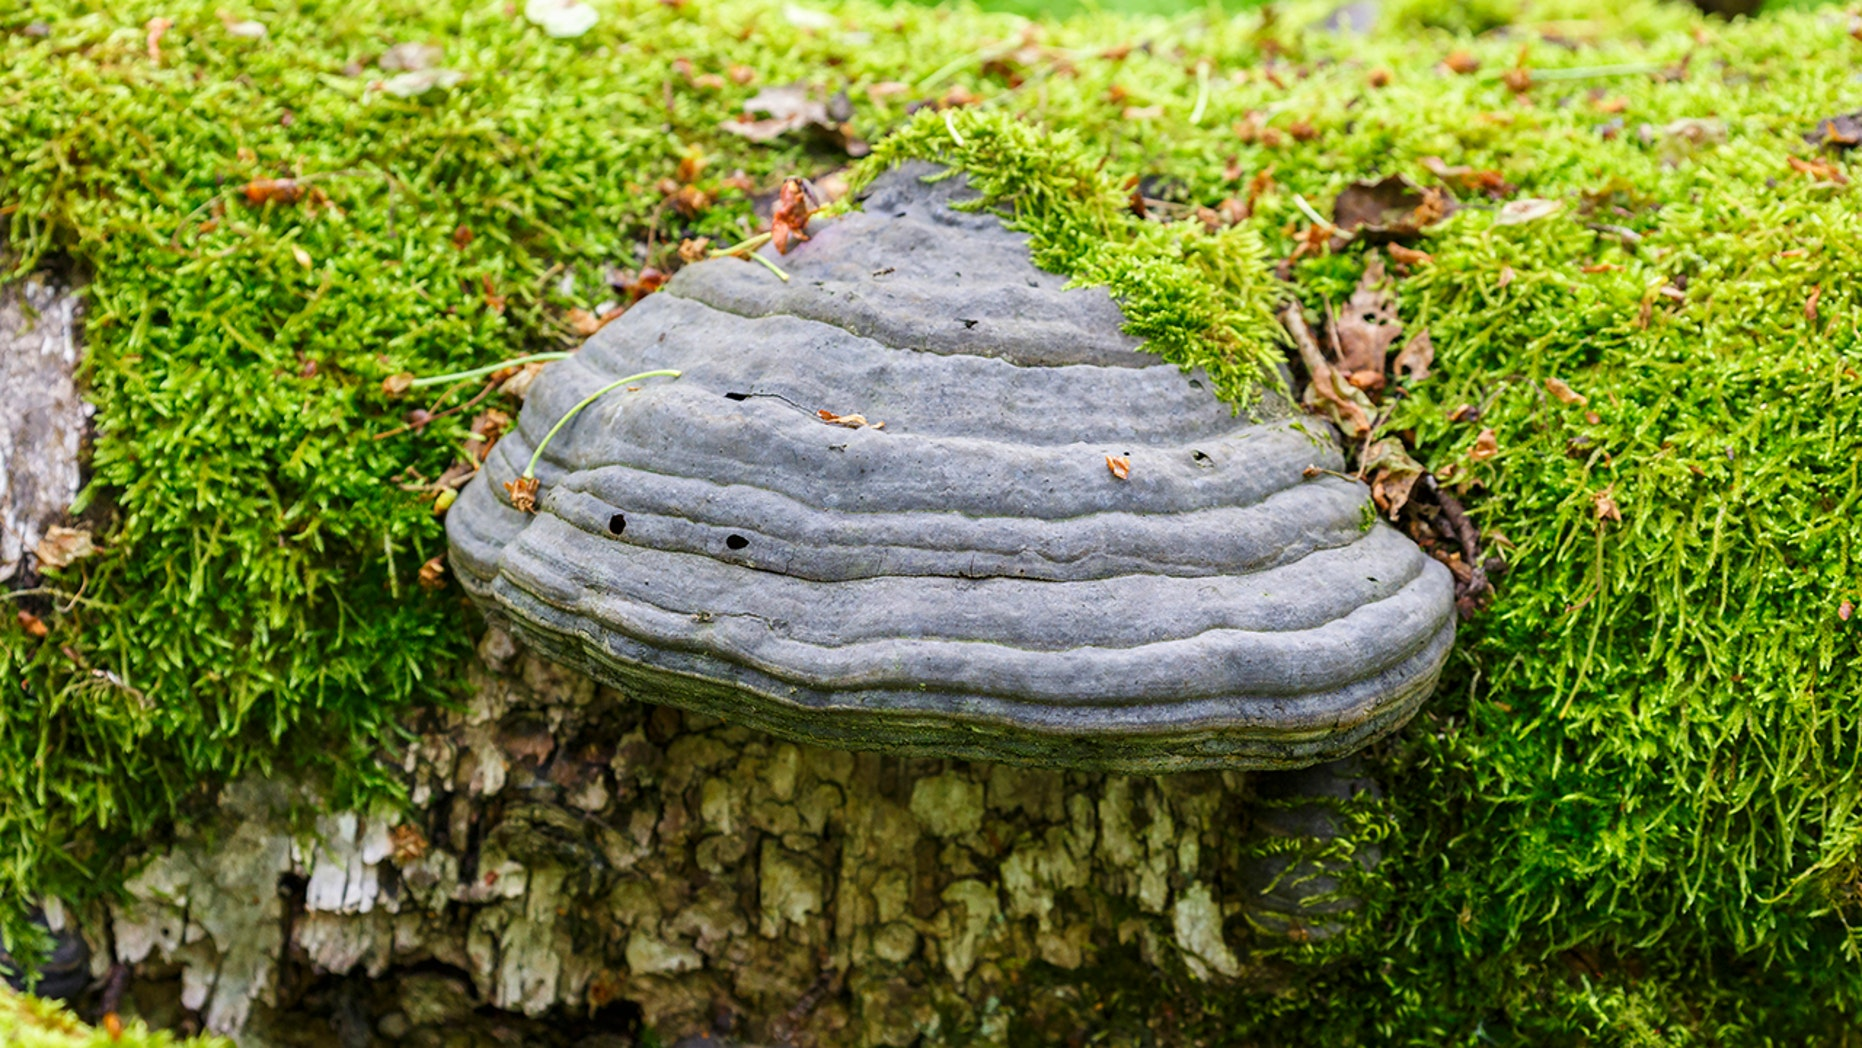 Fomes fomentarius, or tinder fungus, is helpful for starting fires.